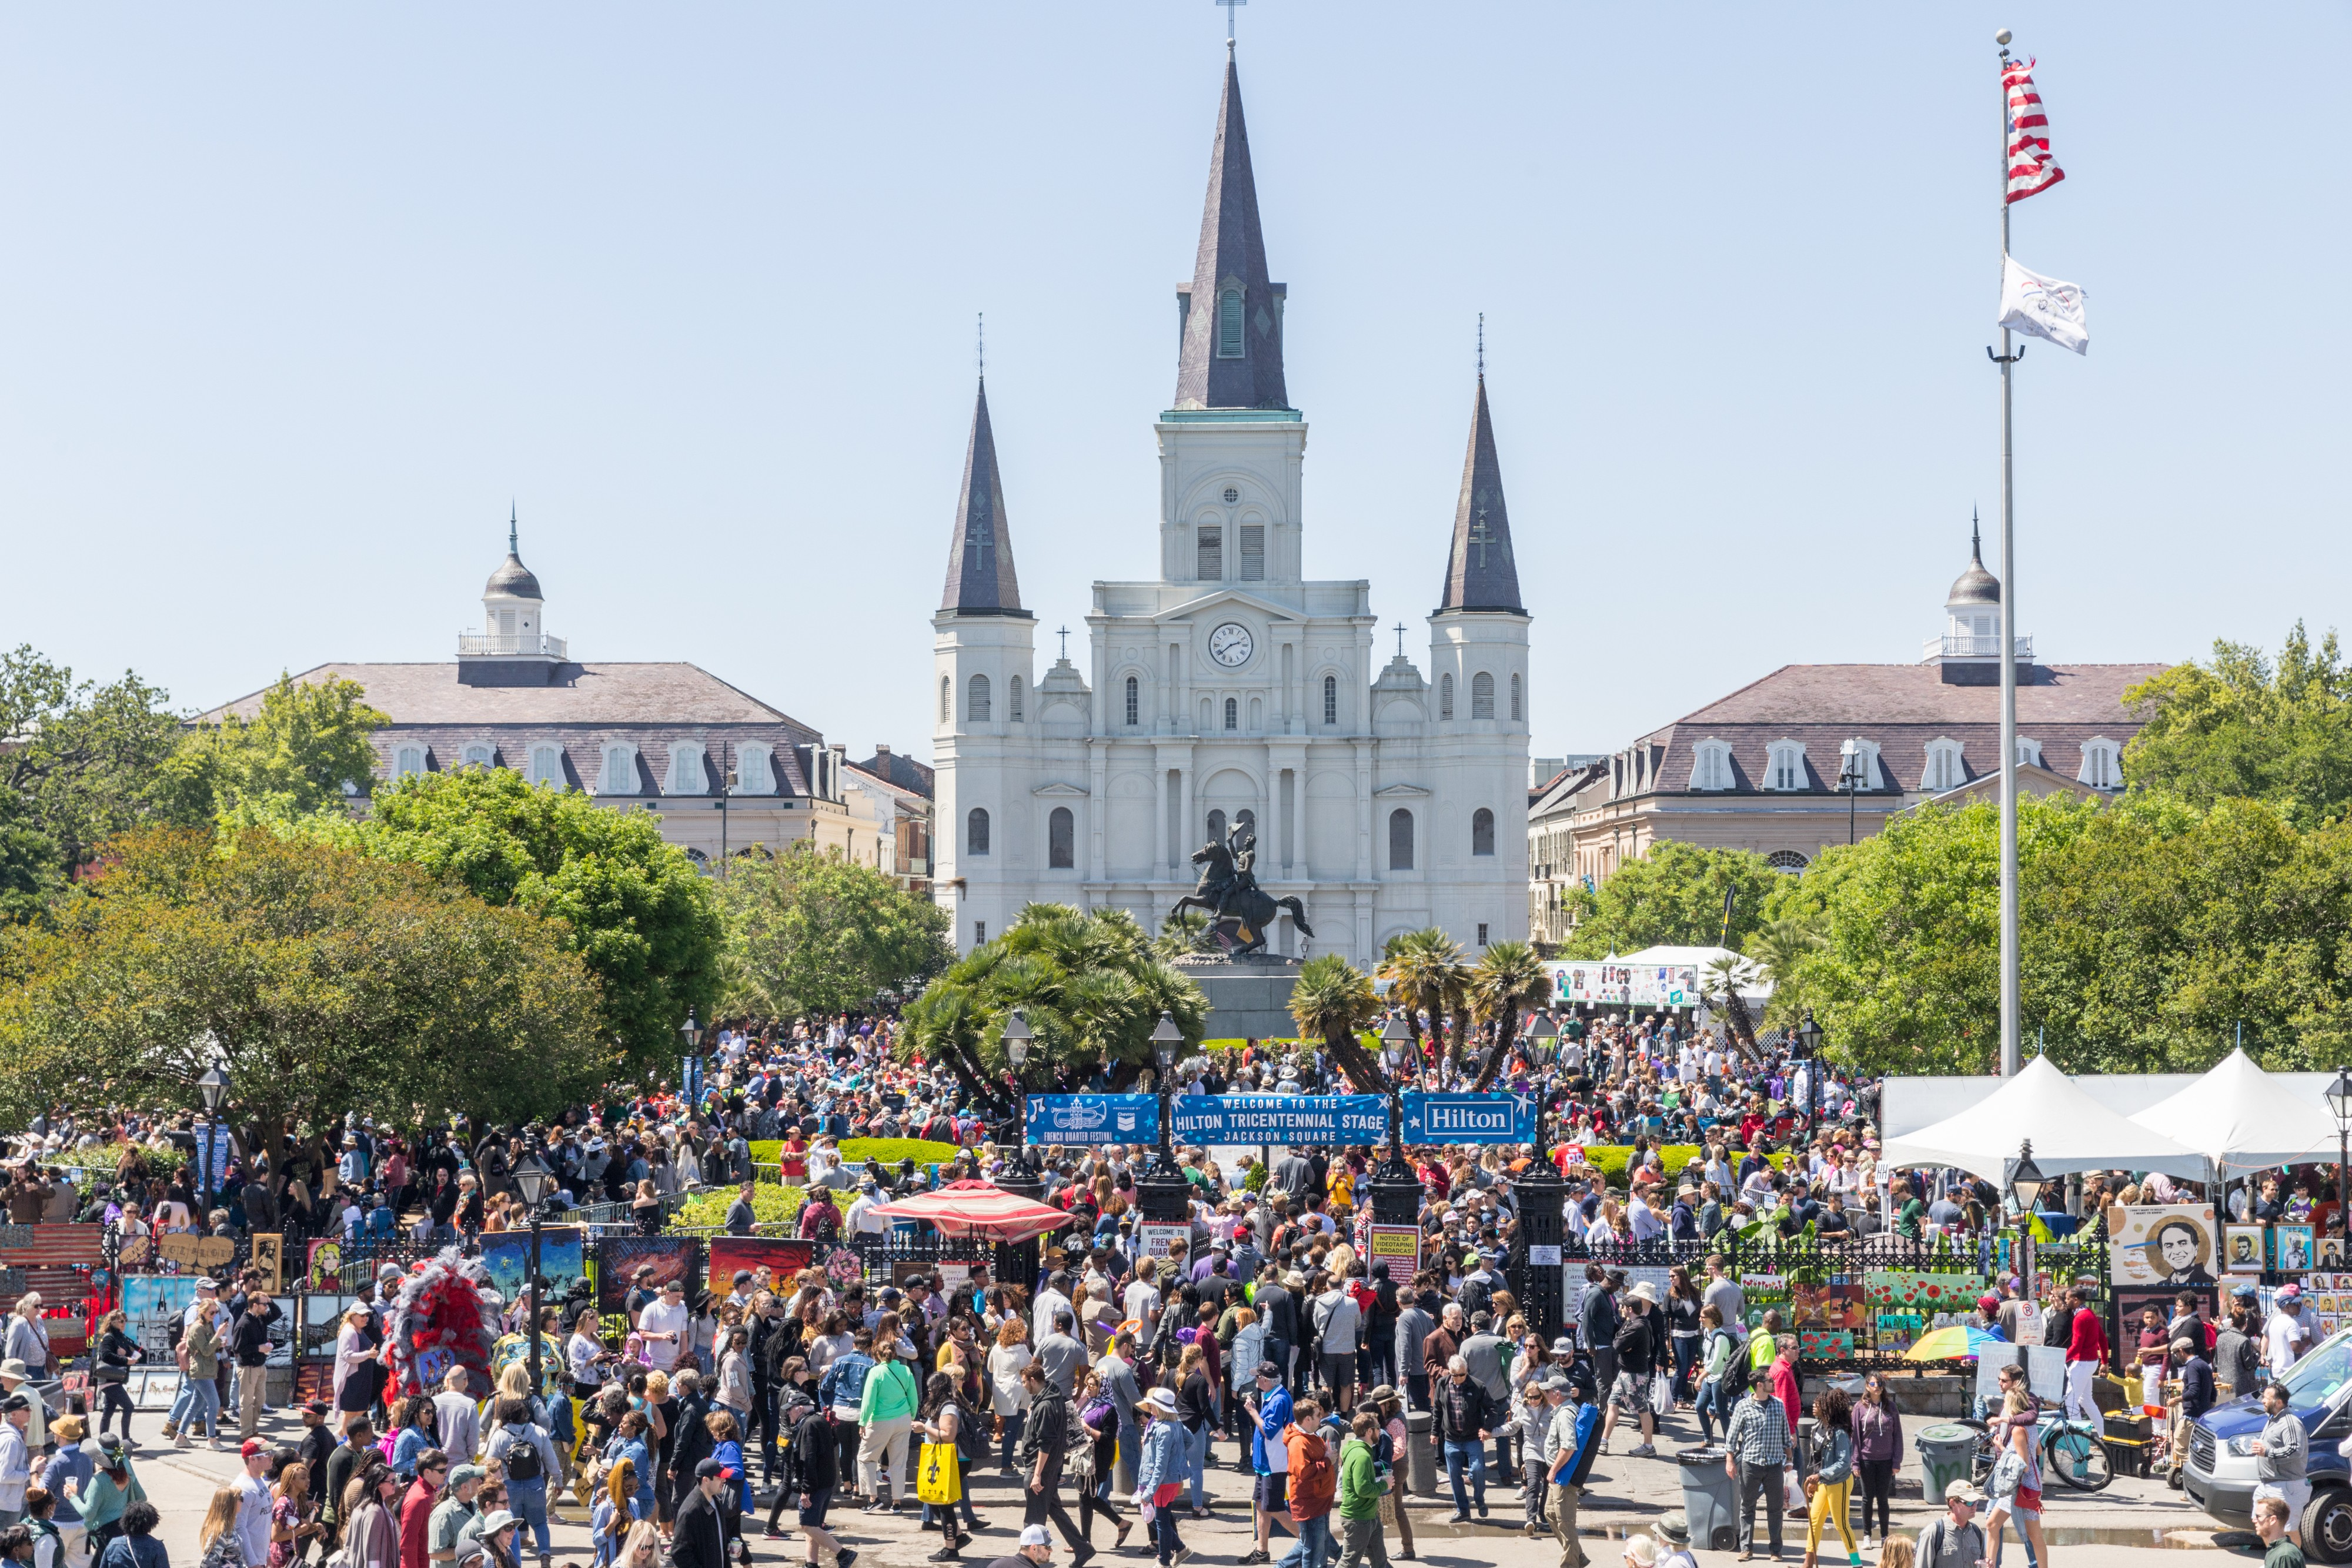 French Quarter Festival 2020 Everything You Need to Know About the French Quarter Festival 2019